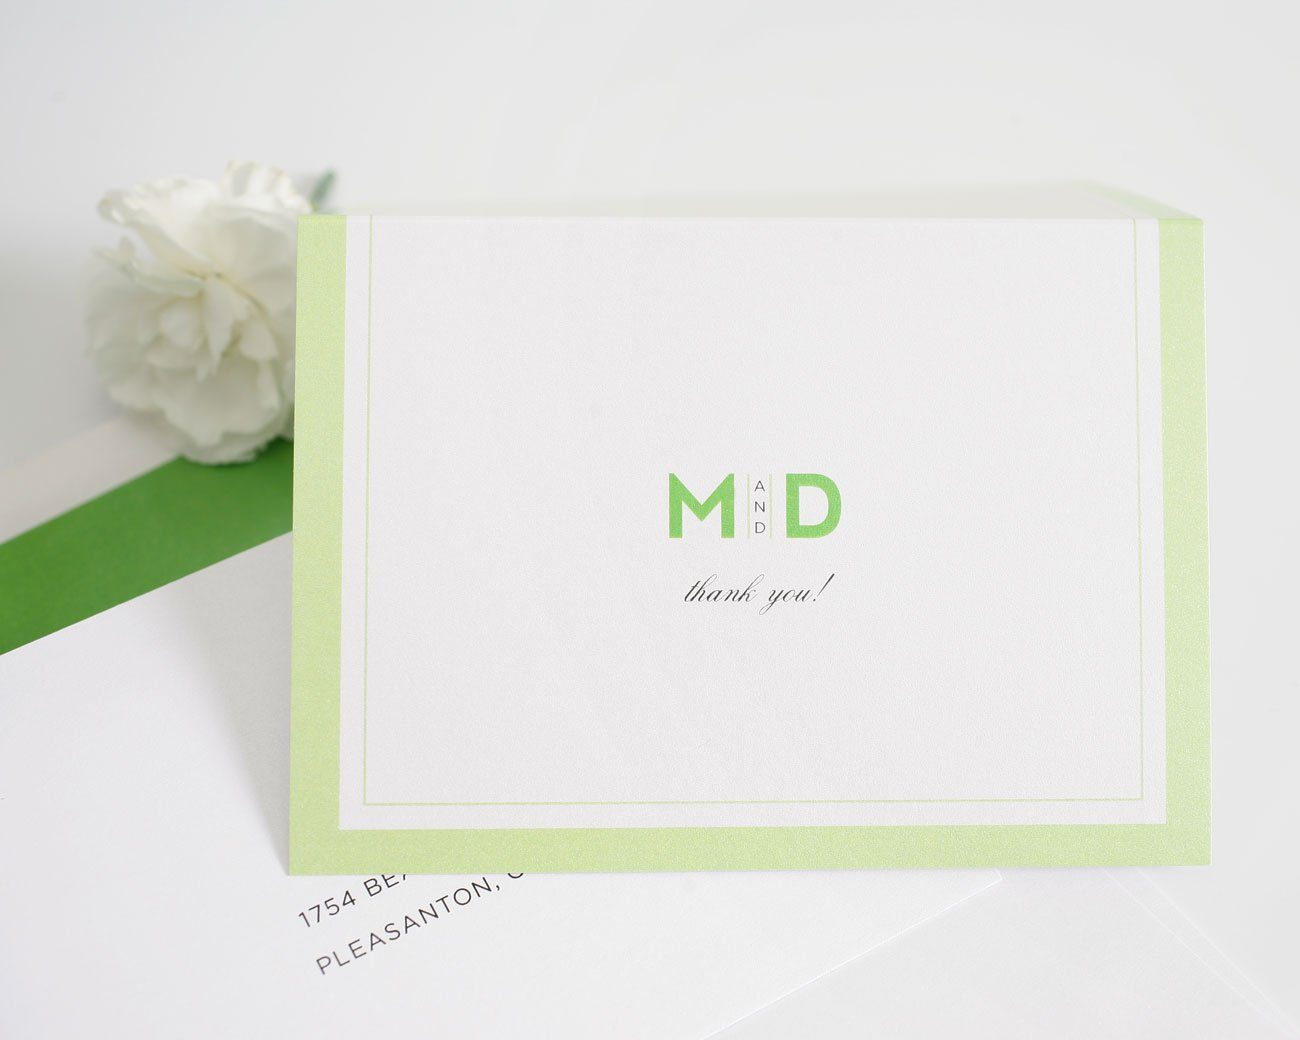 Modern wedding invitations thank you card  in kelly green